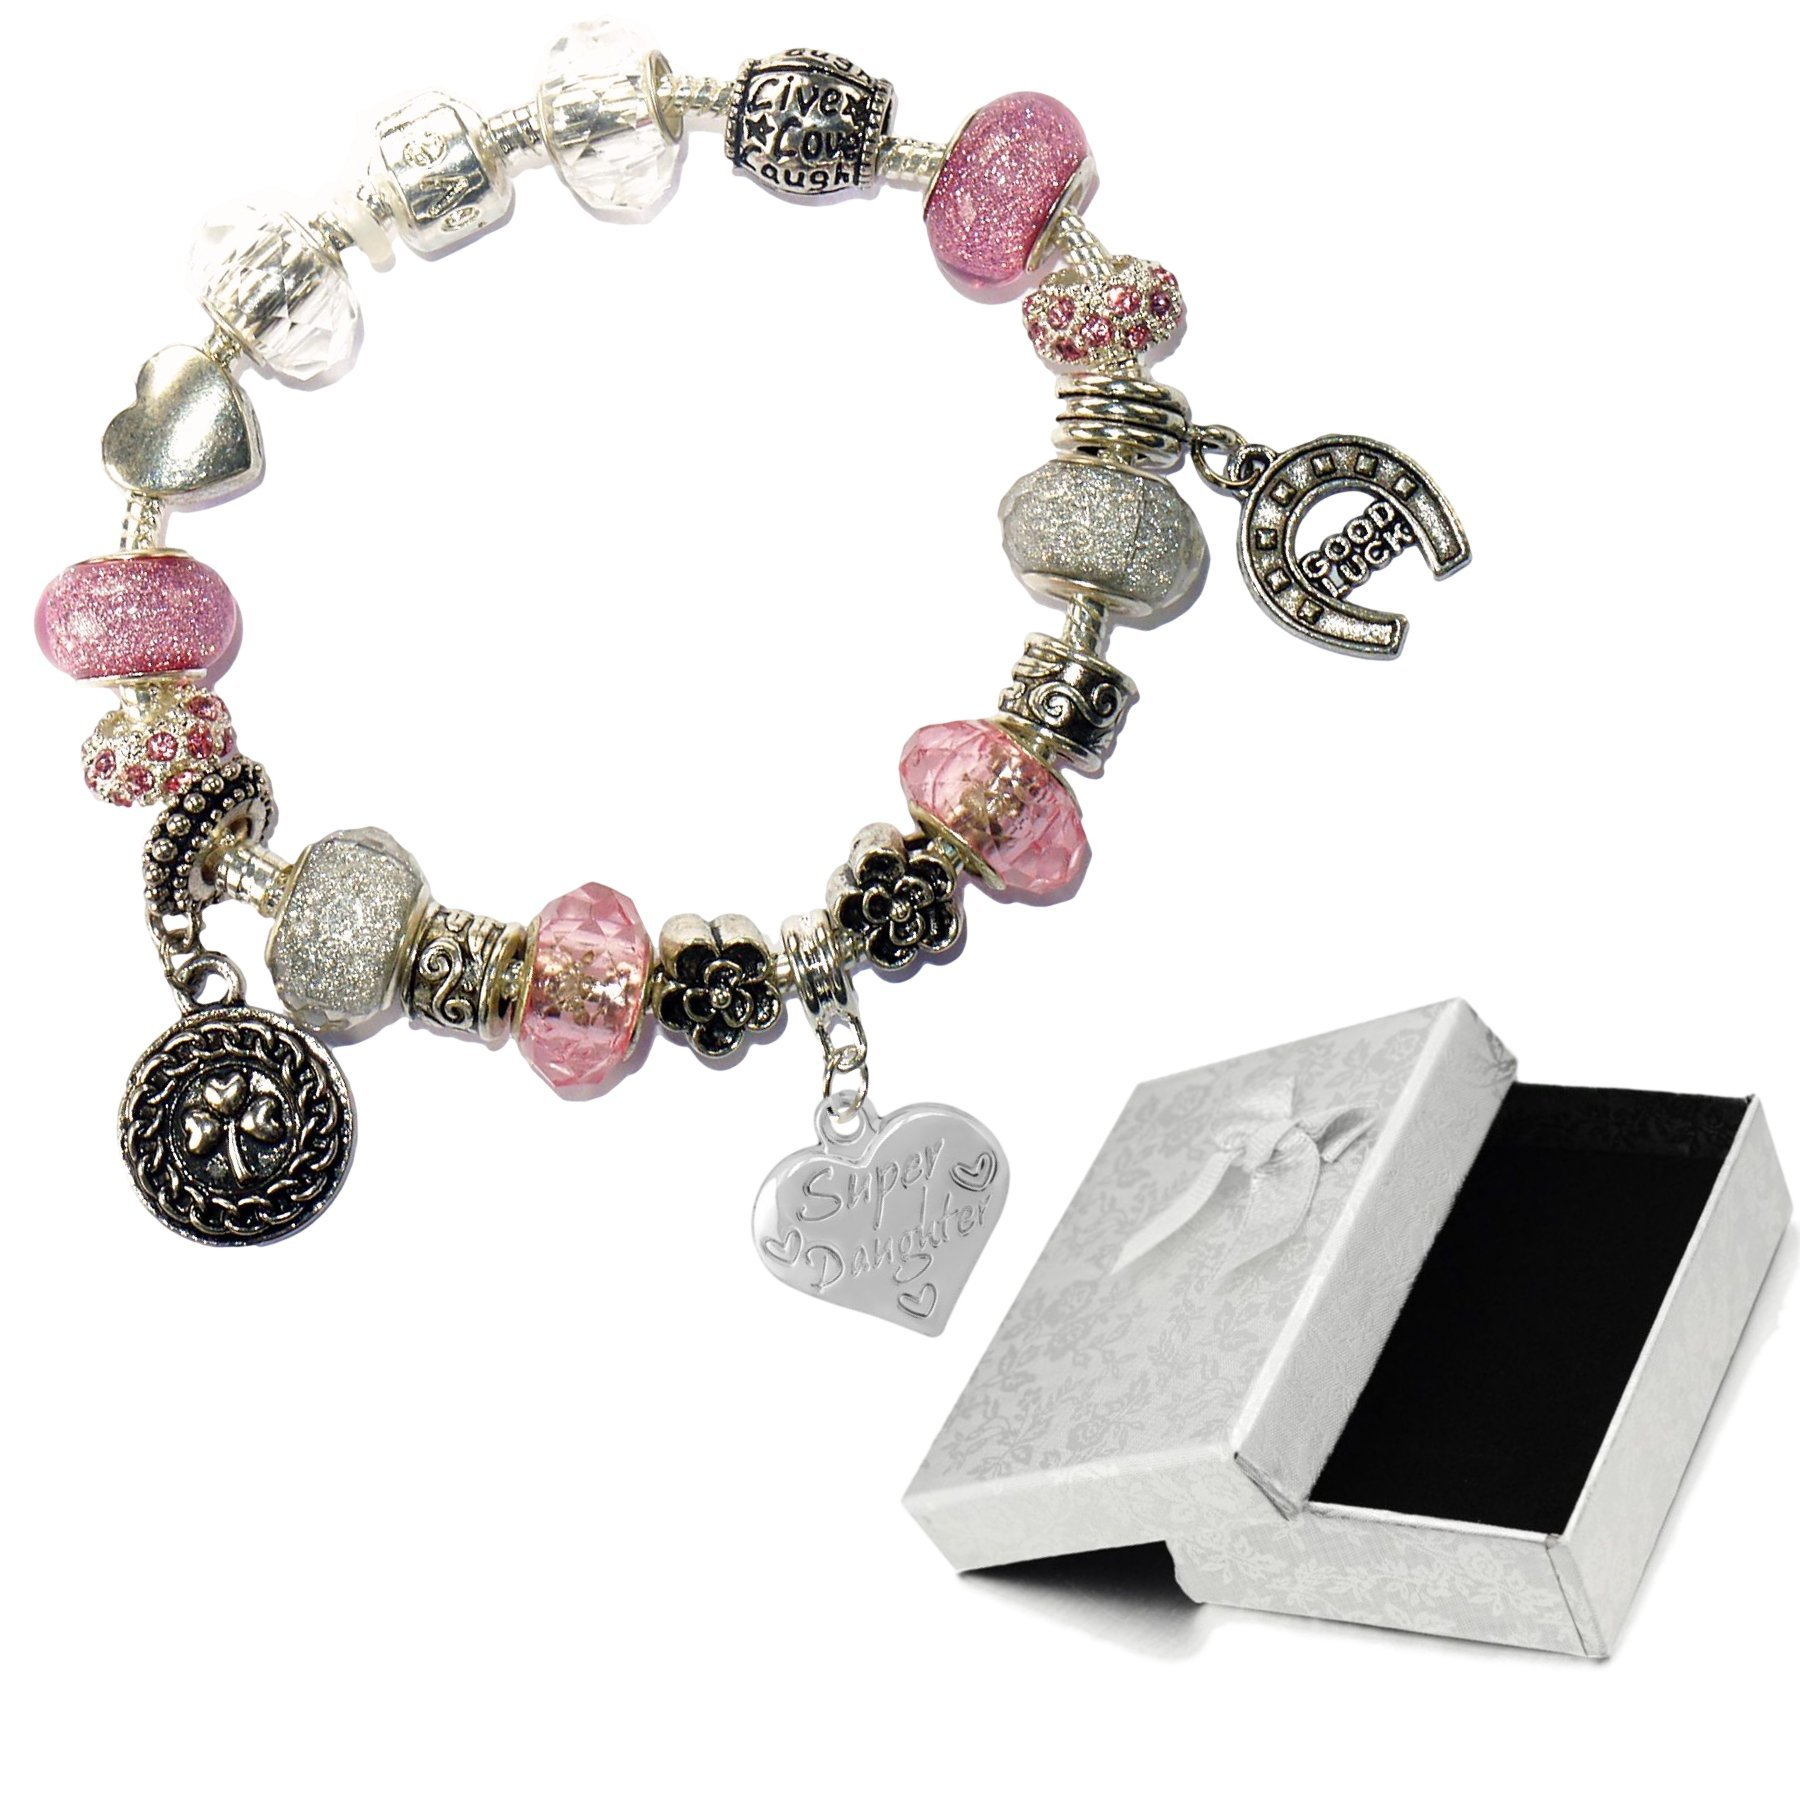 Charm Buddy Super Daughter Pink Silver Crystal Good Luck Pandora Style Bracelet With Charms Gift Box